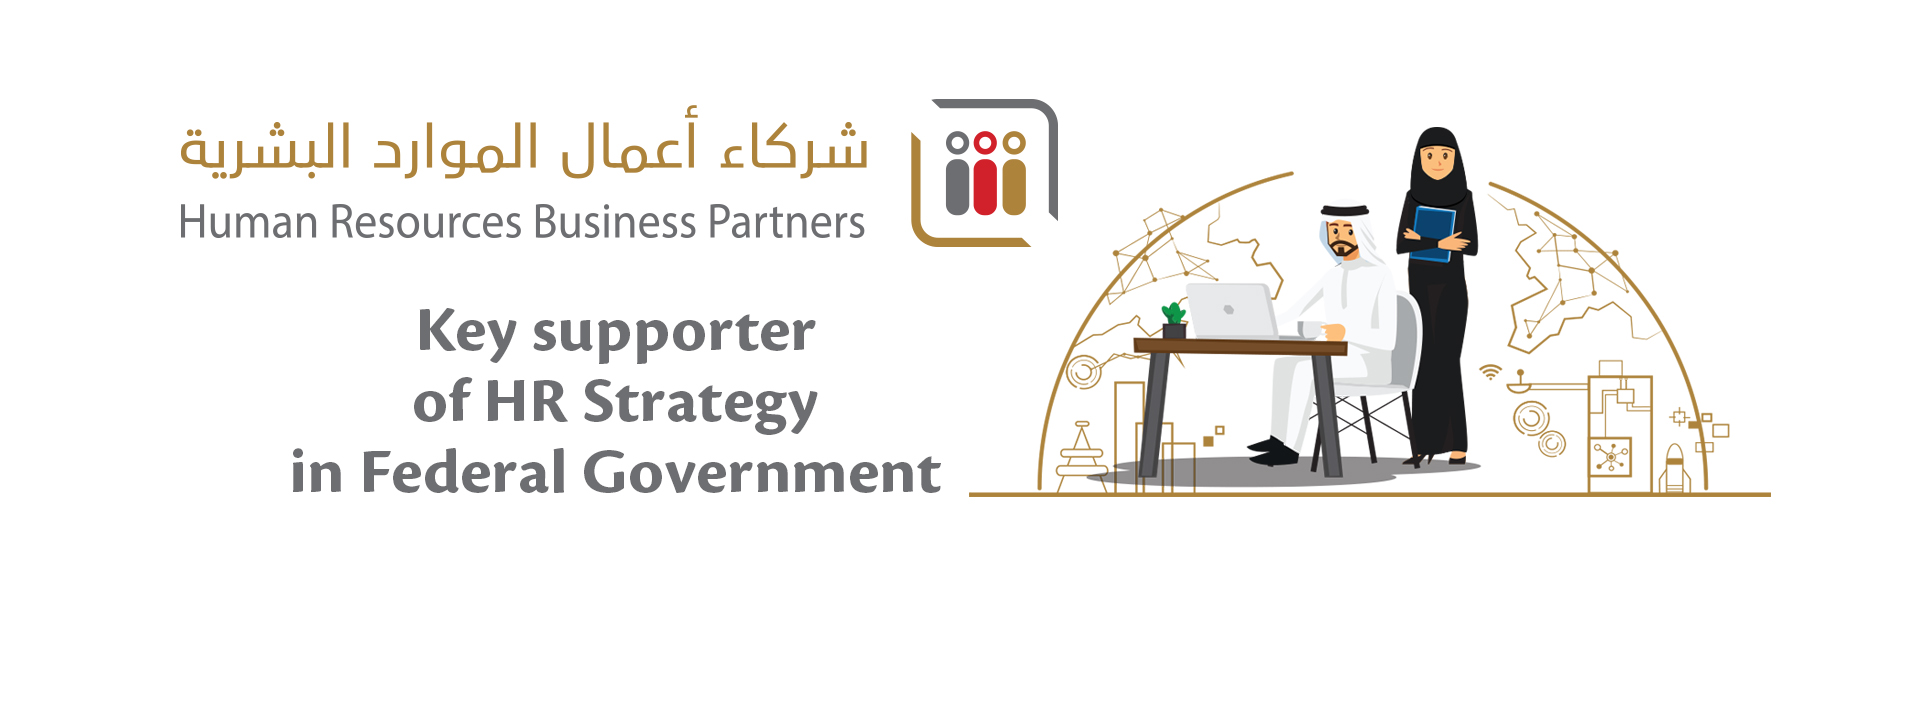 HR Business Partners in Federal Government